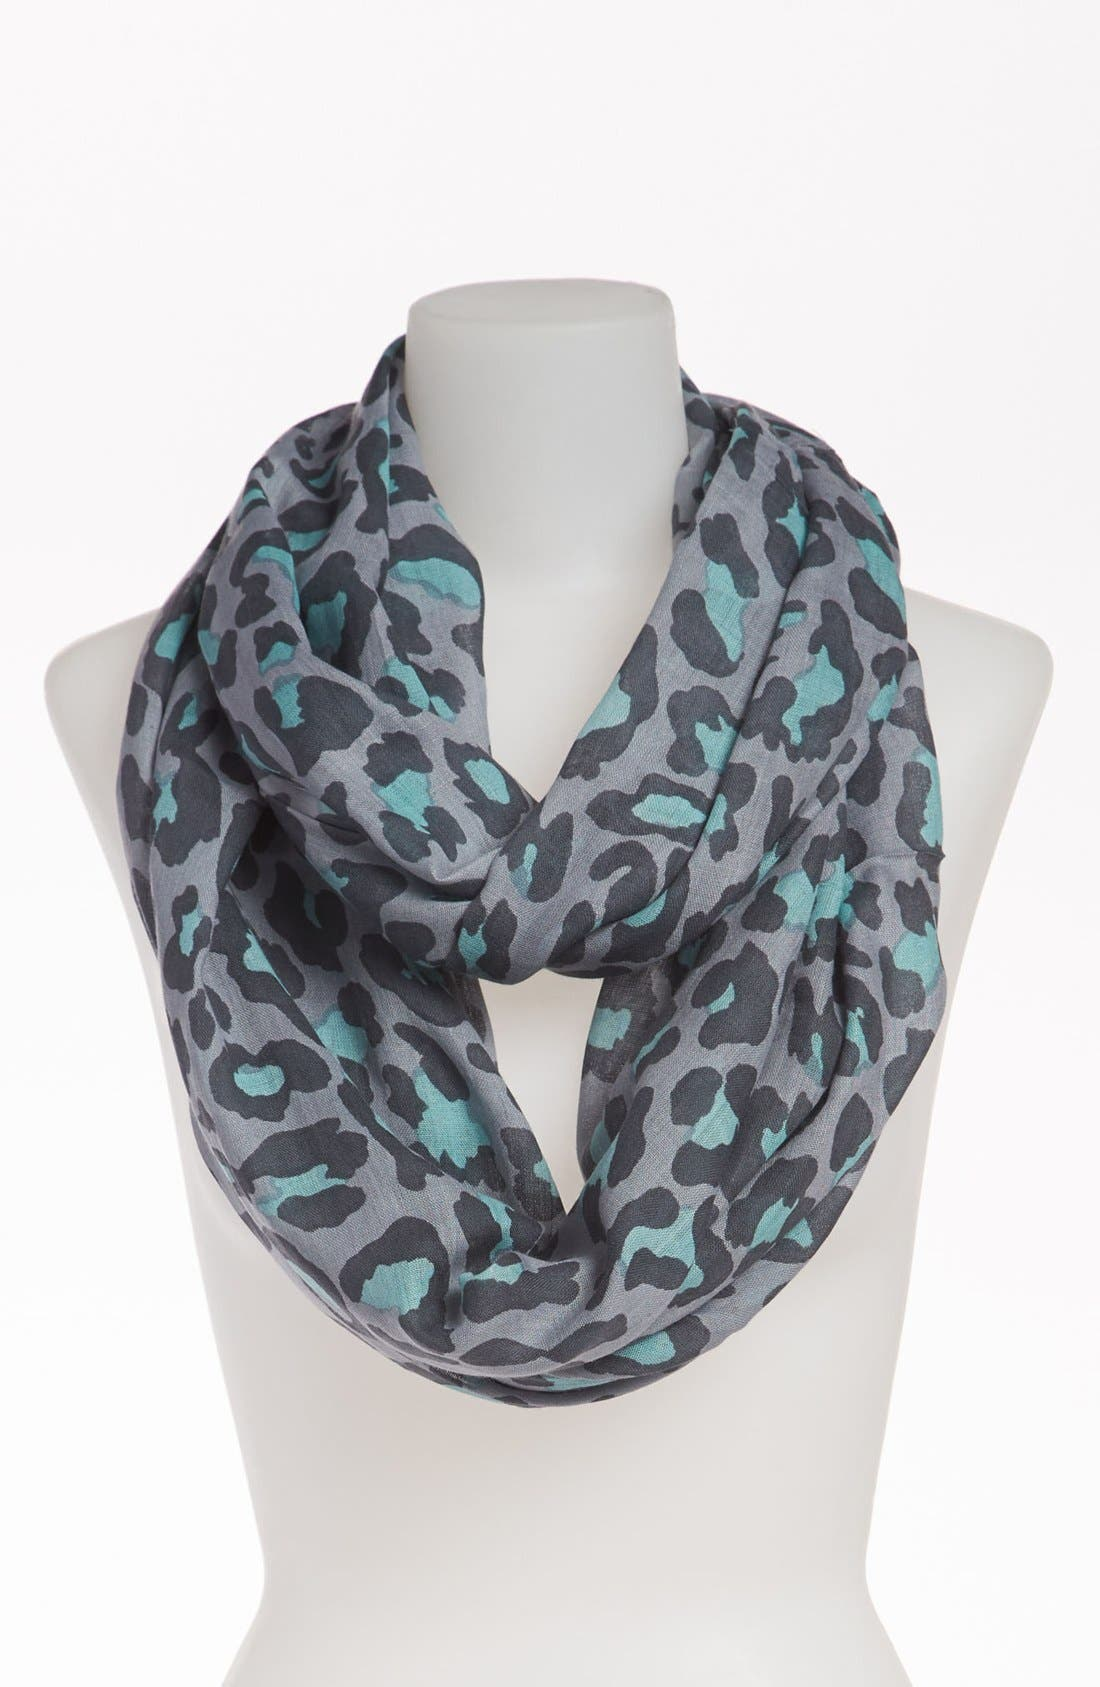 Main Image - BP. Leopard Print Infinity Scarf